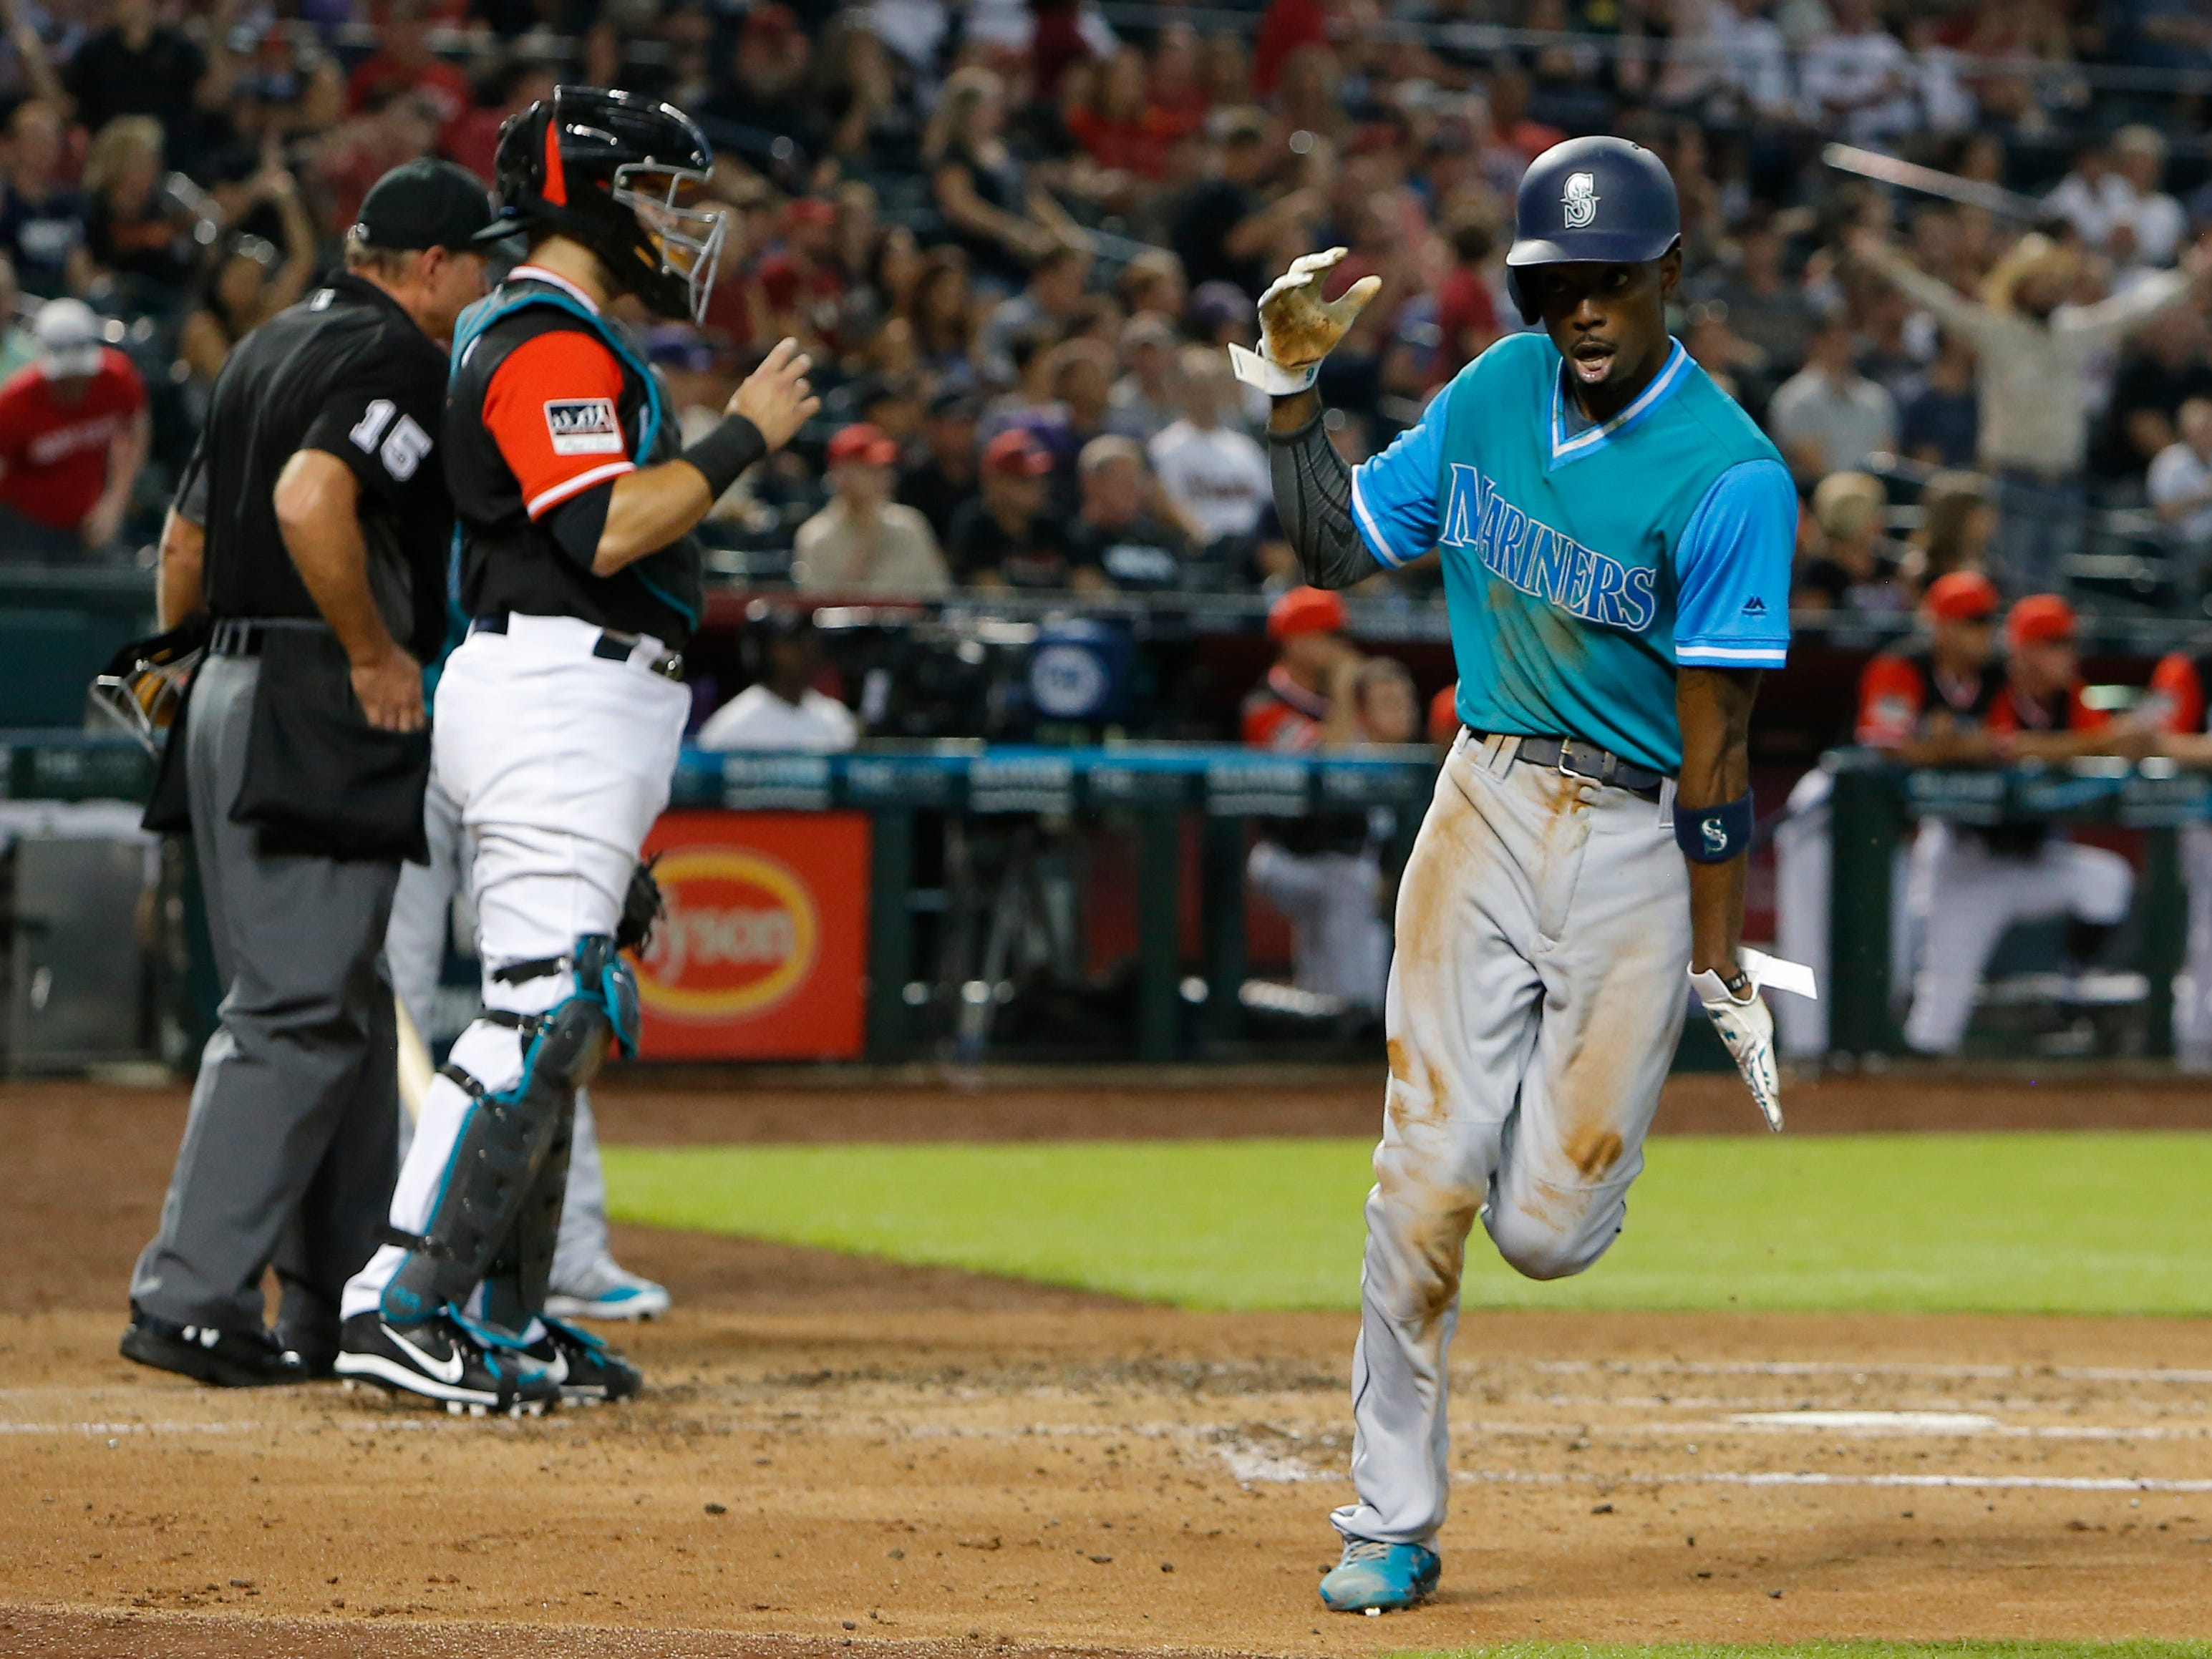 Seattle Mariners Dee Gordon celebrates after scoring on a throwing error by Arizona Diamondbacks pitcher Zack Godley after Gordon stole third base during the third inning of a baseball game Friday, Aug. 24, 2018, in Phoenix.